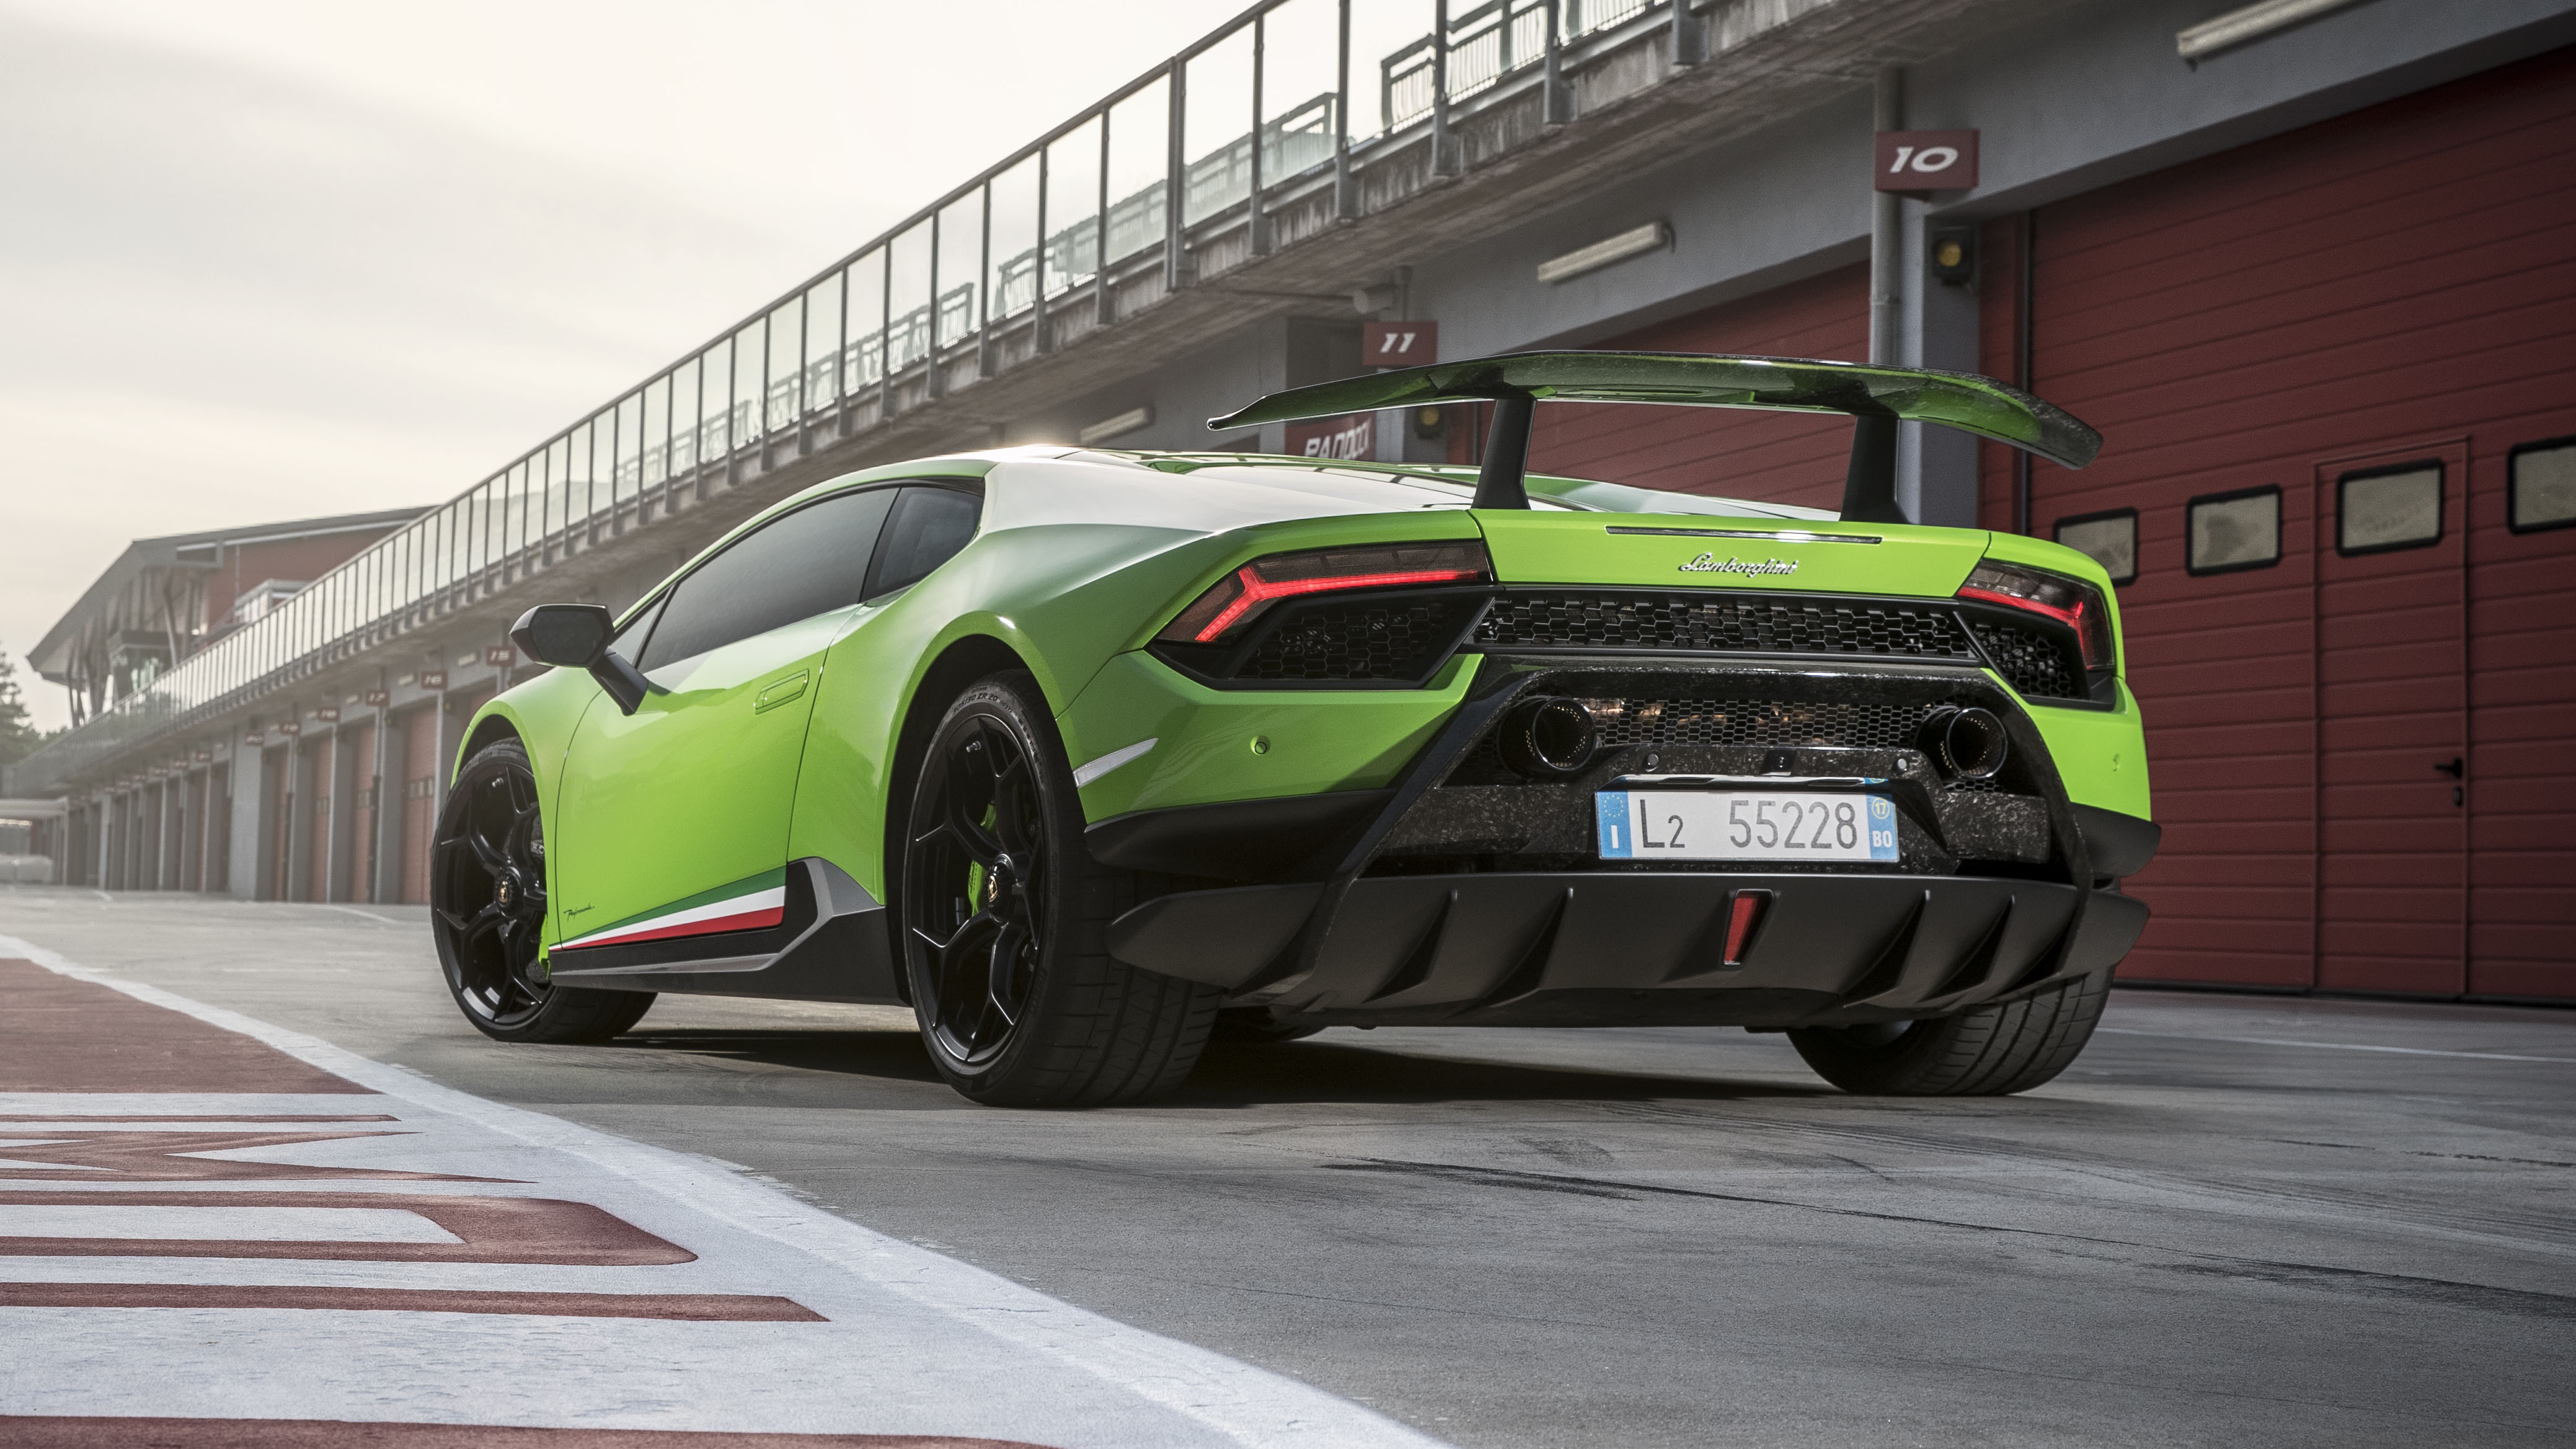 Lamborghini Huracan Performante rear